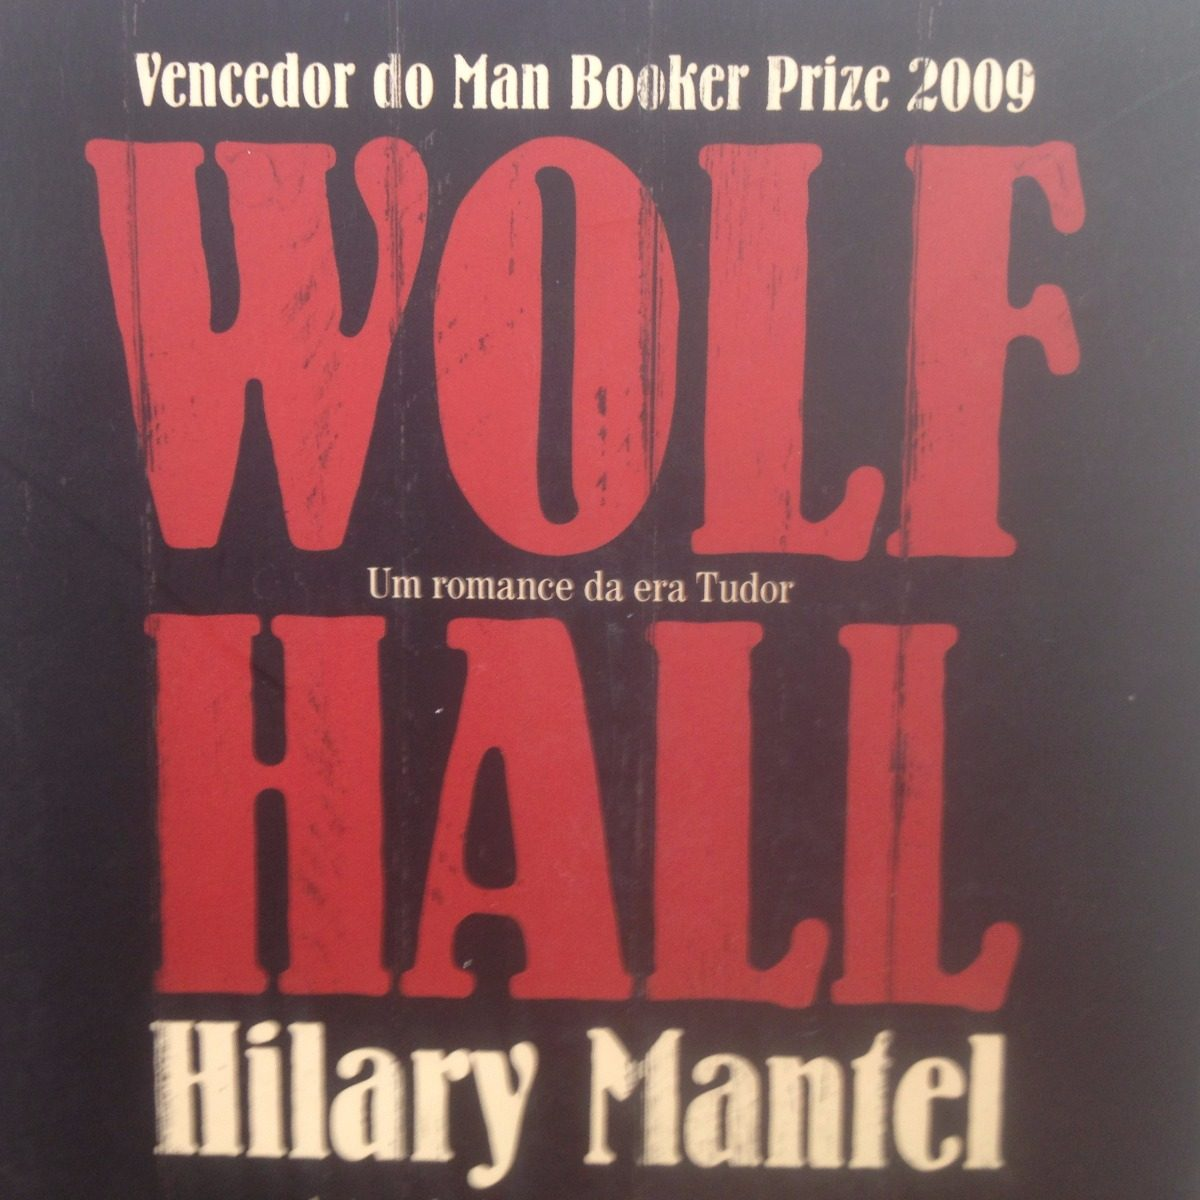 Livro wolf hall hilary mantel